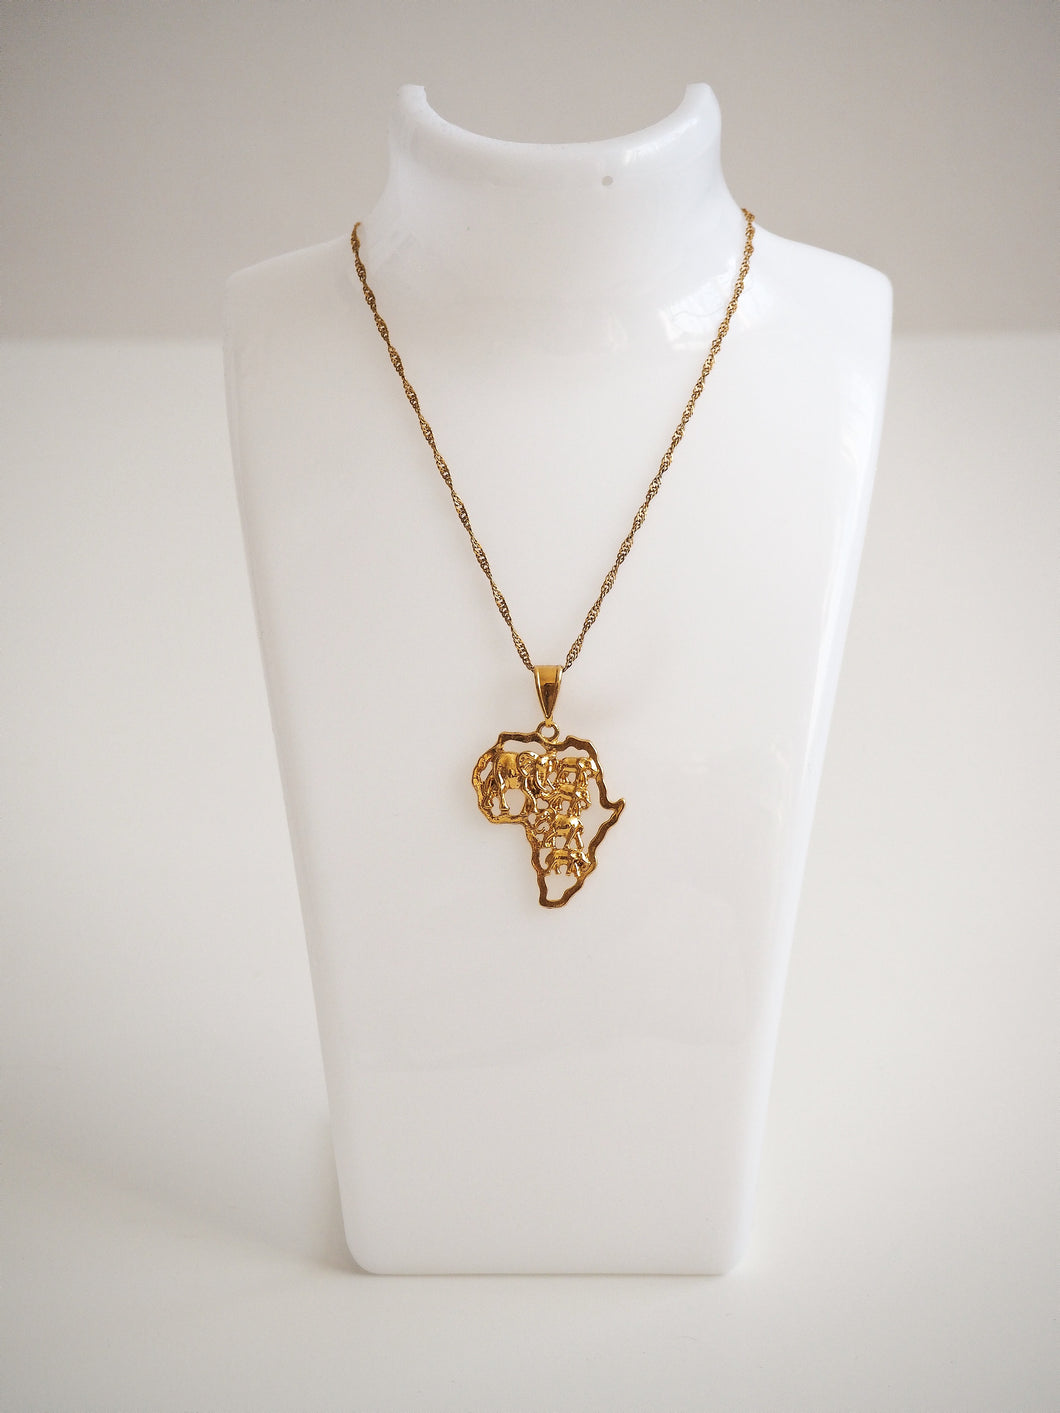 GOLD ELEPHANTS OF AFRICA NECKLACE